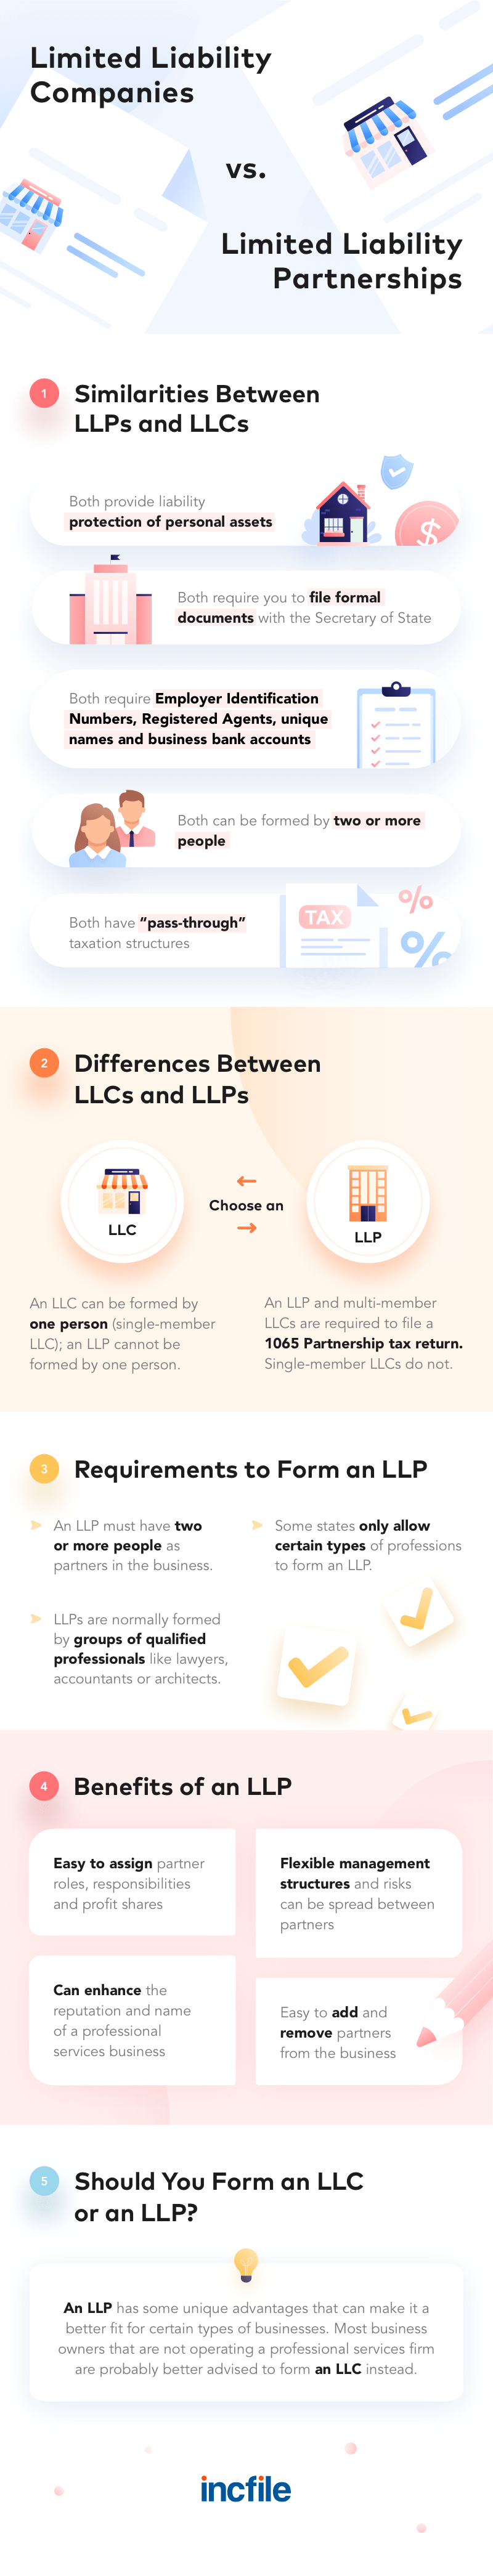 llc vs llp differences and similarities